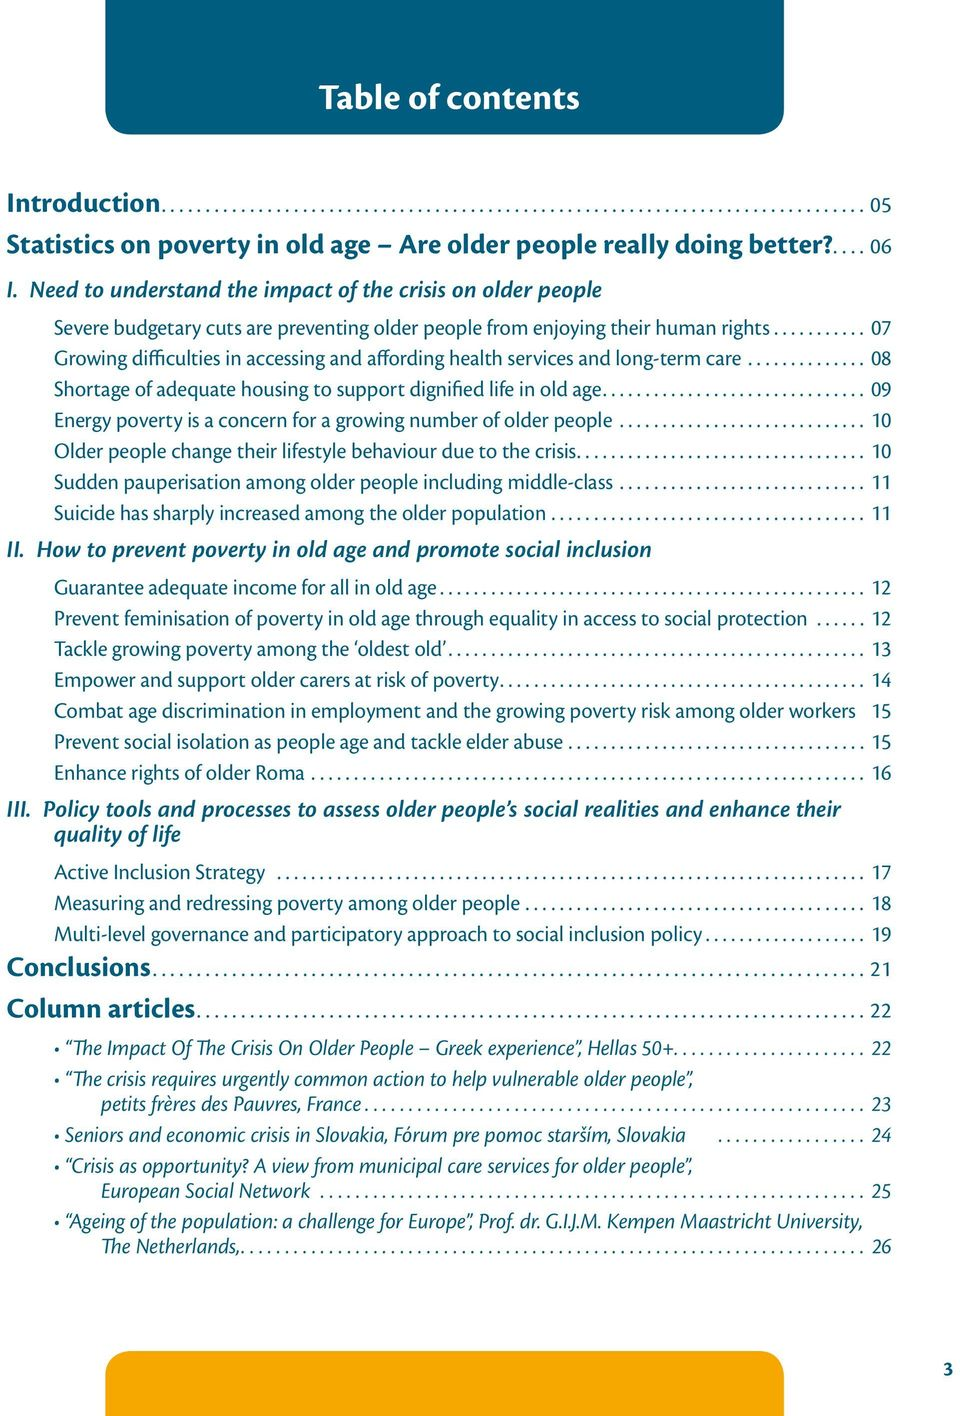 health services and long-term care 08 Shortage of adequate housing to support dignified life in old age 09 Energy poverty is a concern for a growing number of older people 10 Older people change